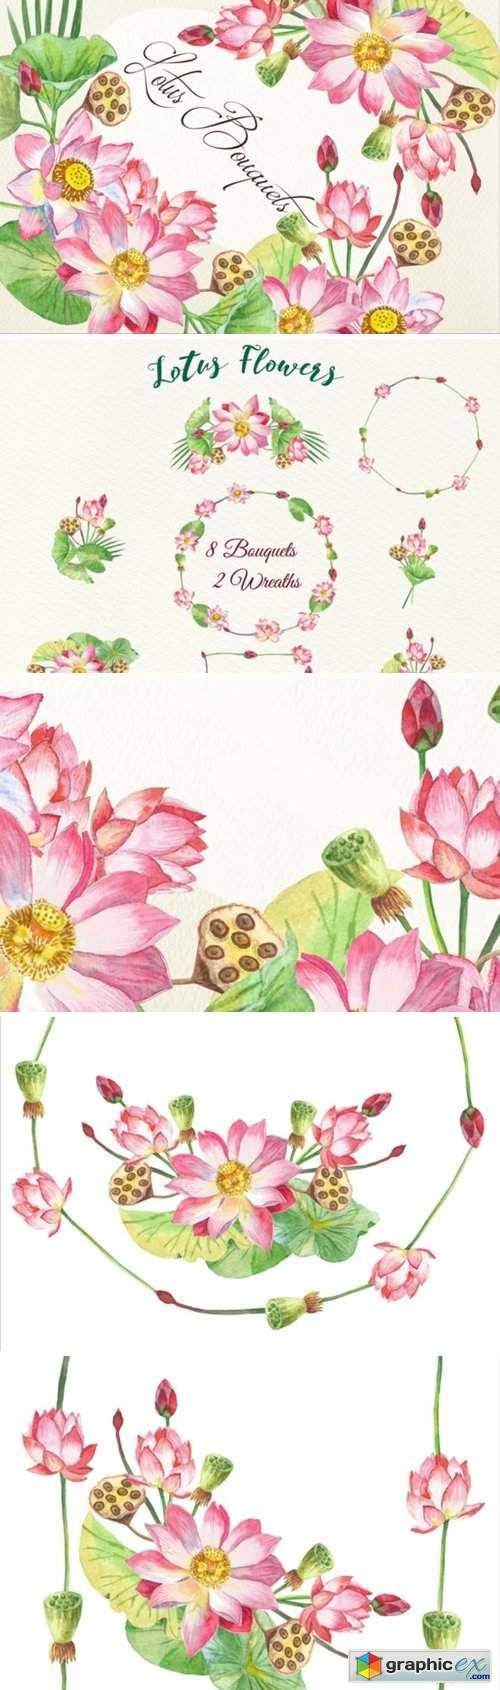 Lotus Flowers Clipart Bouquets Wreaths